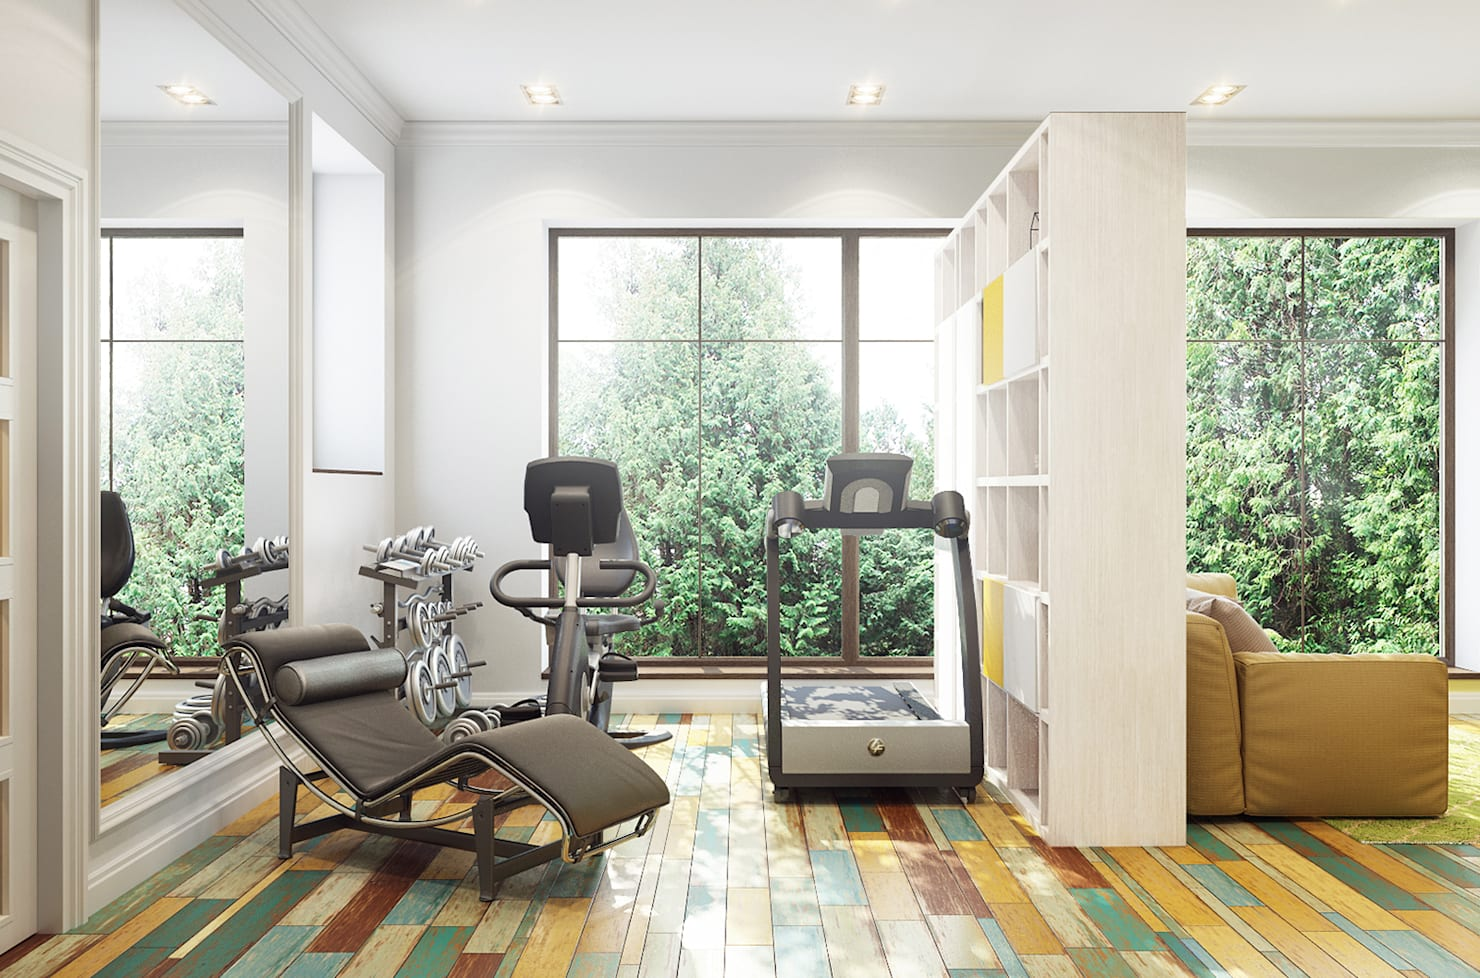 Making a gym at home on the cheap